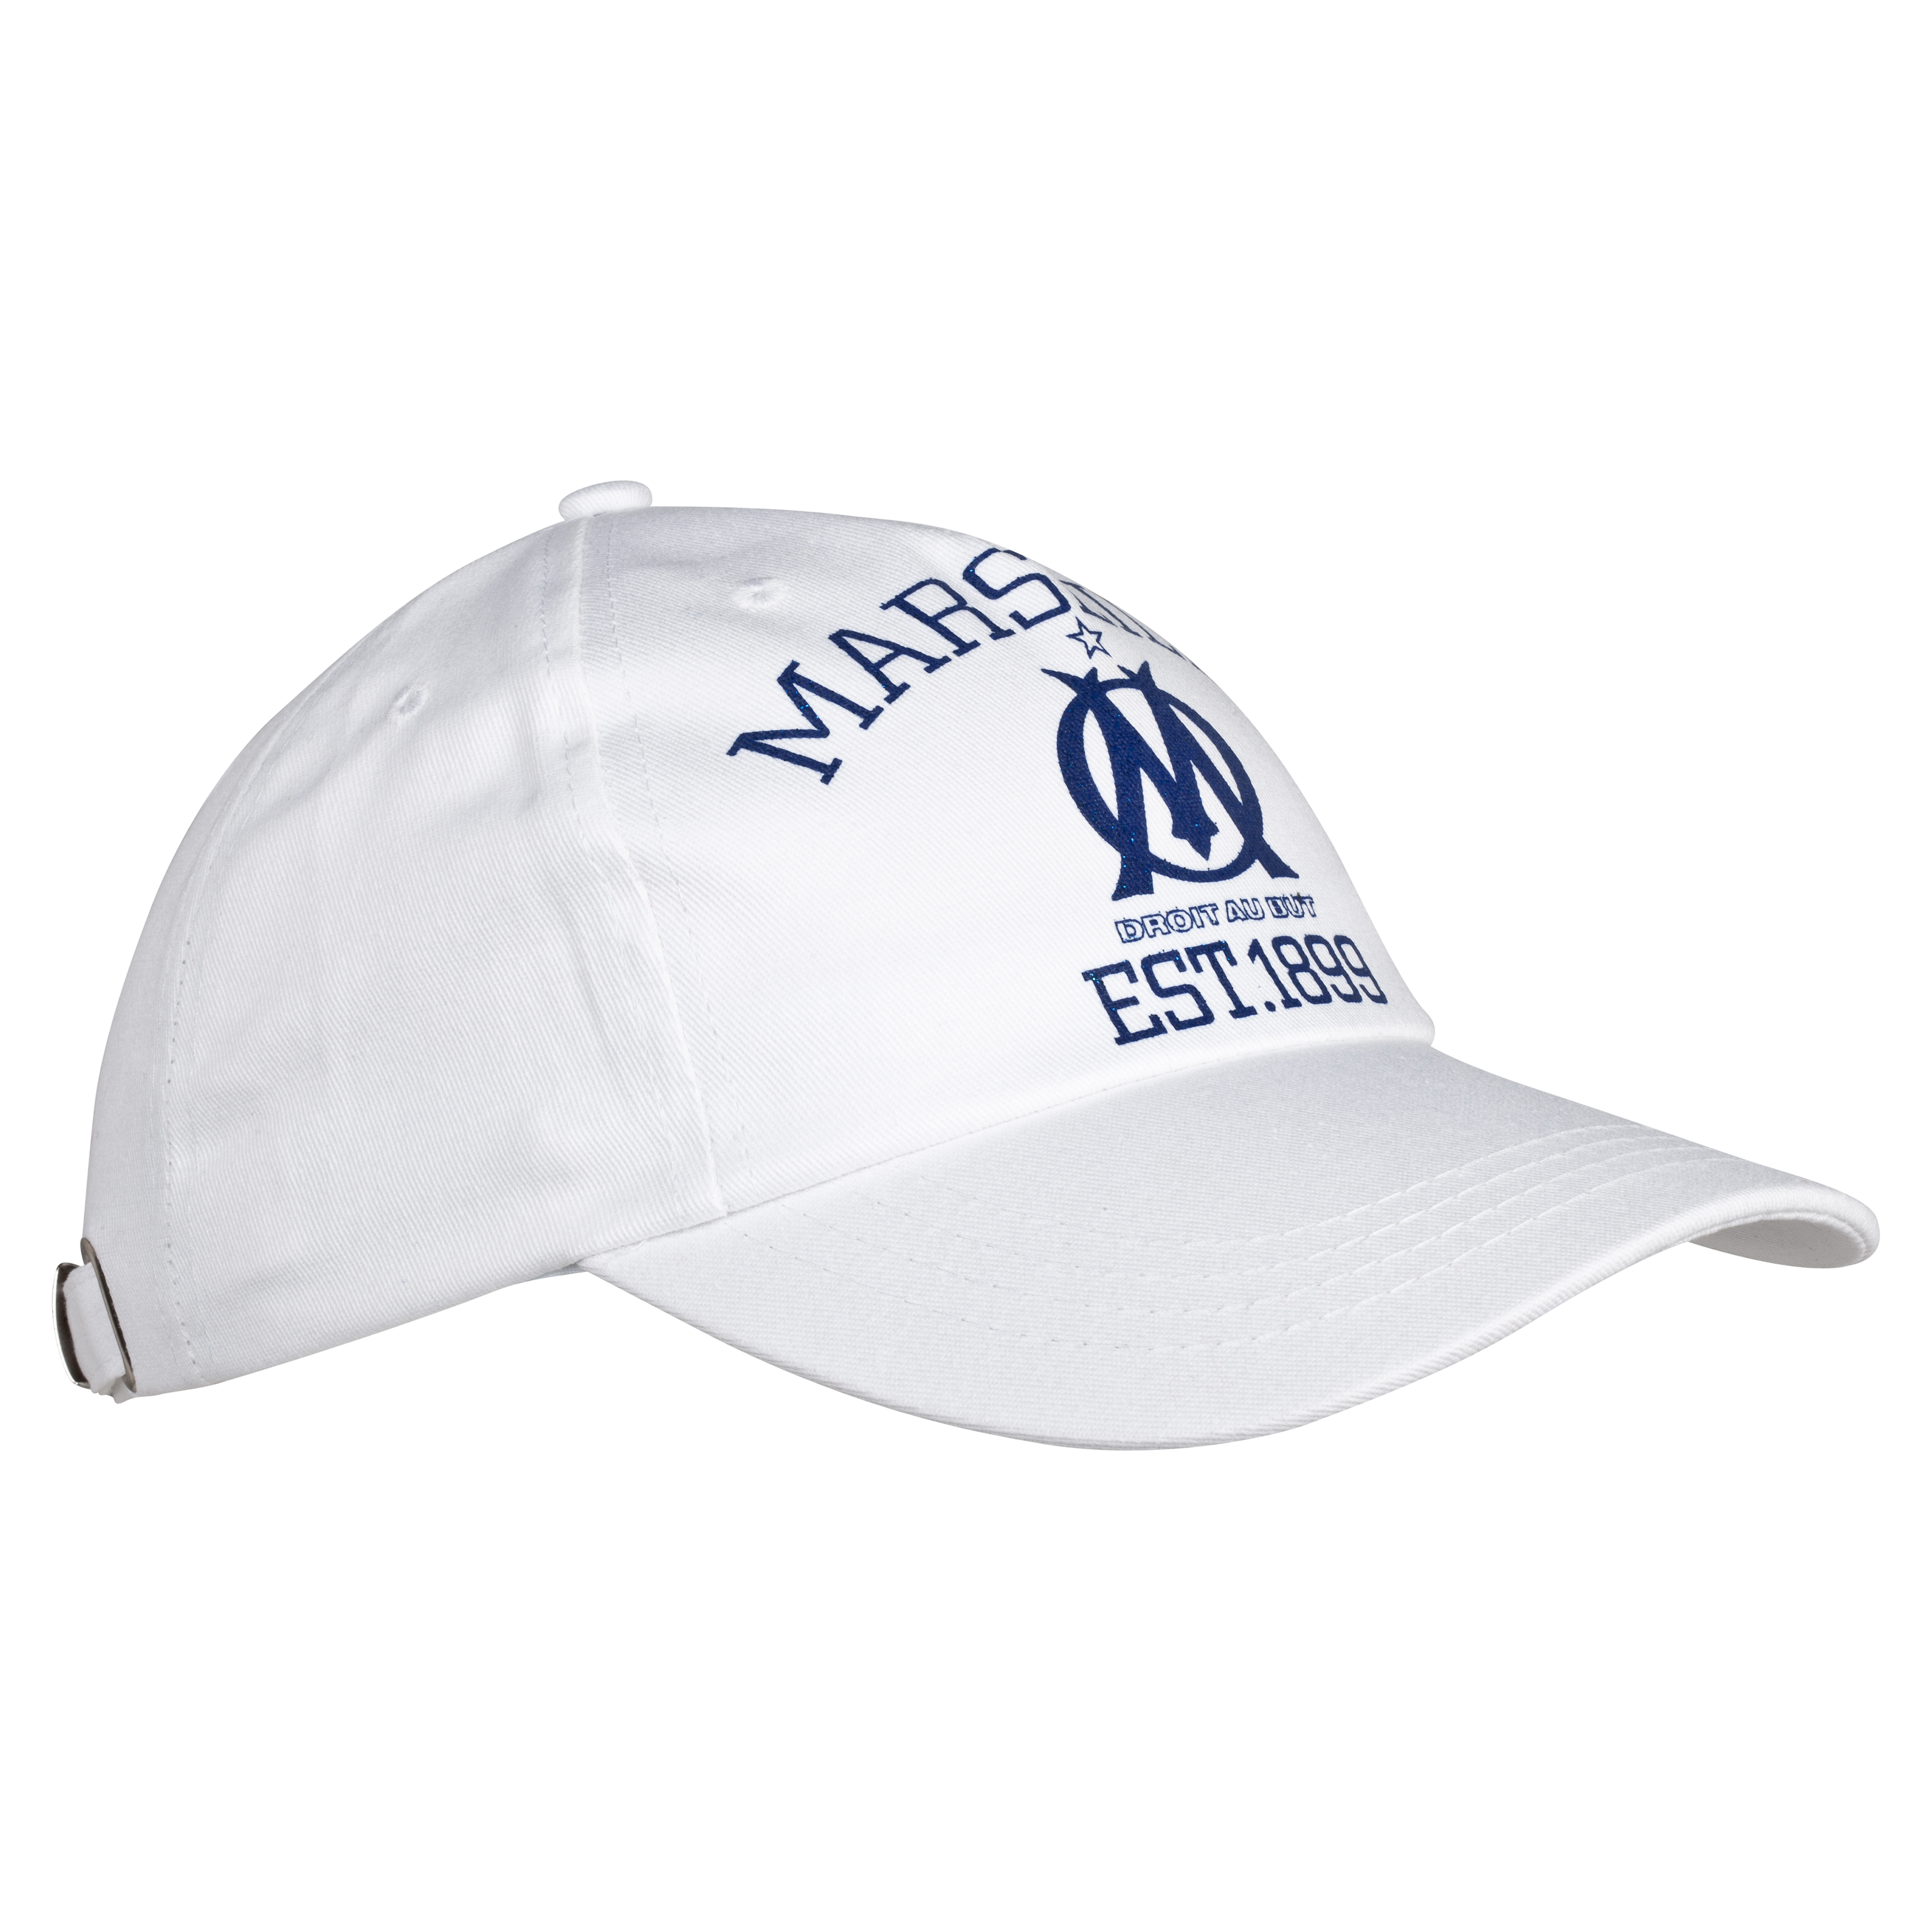 Olympique de Marseille Lifestyle Cap - White - Women